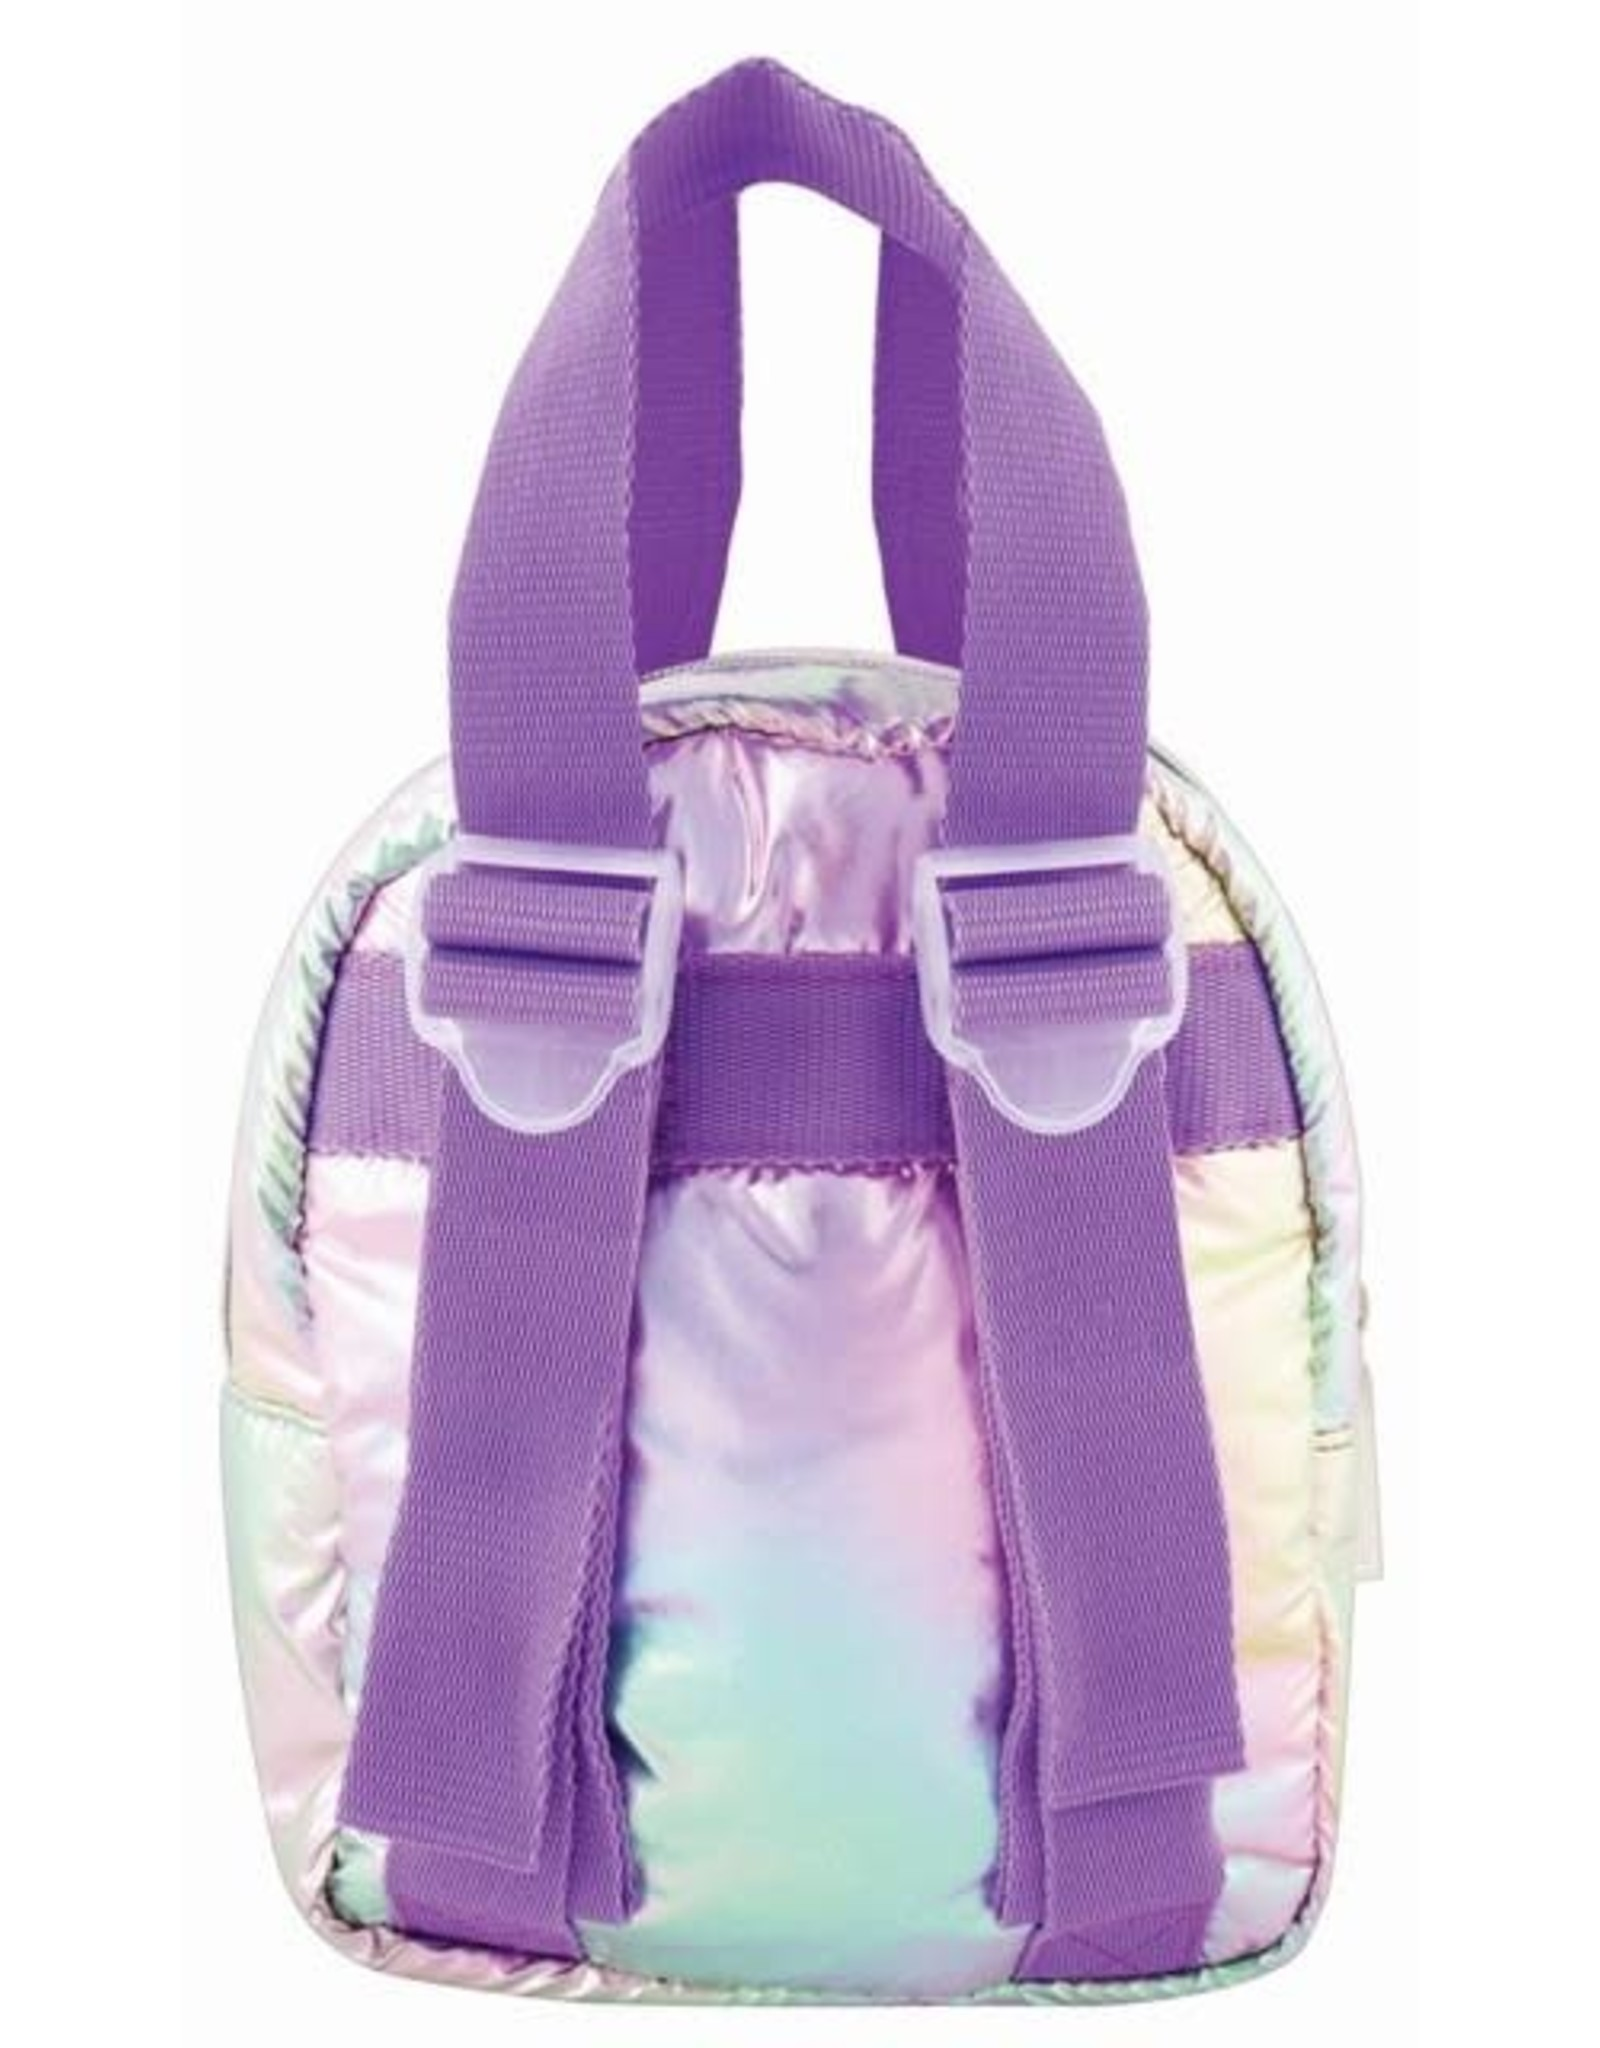 Fashion Angels Backpack Puffer Pastel Gradient